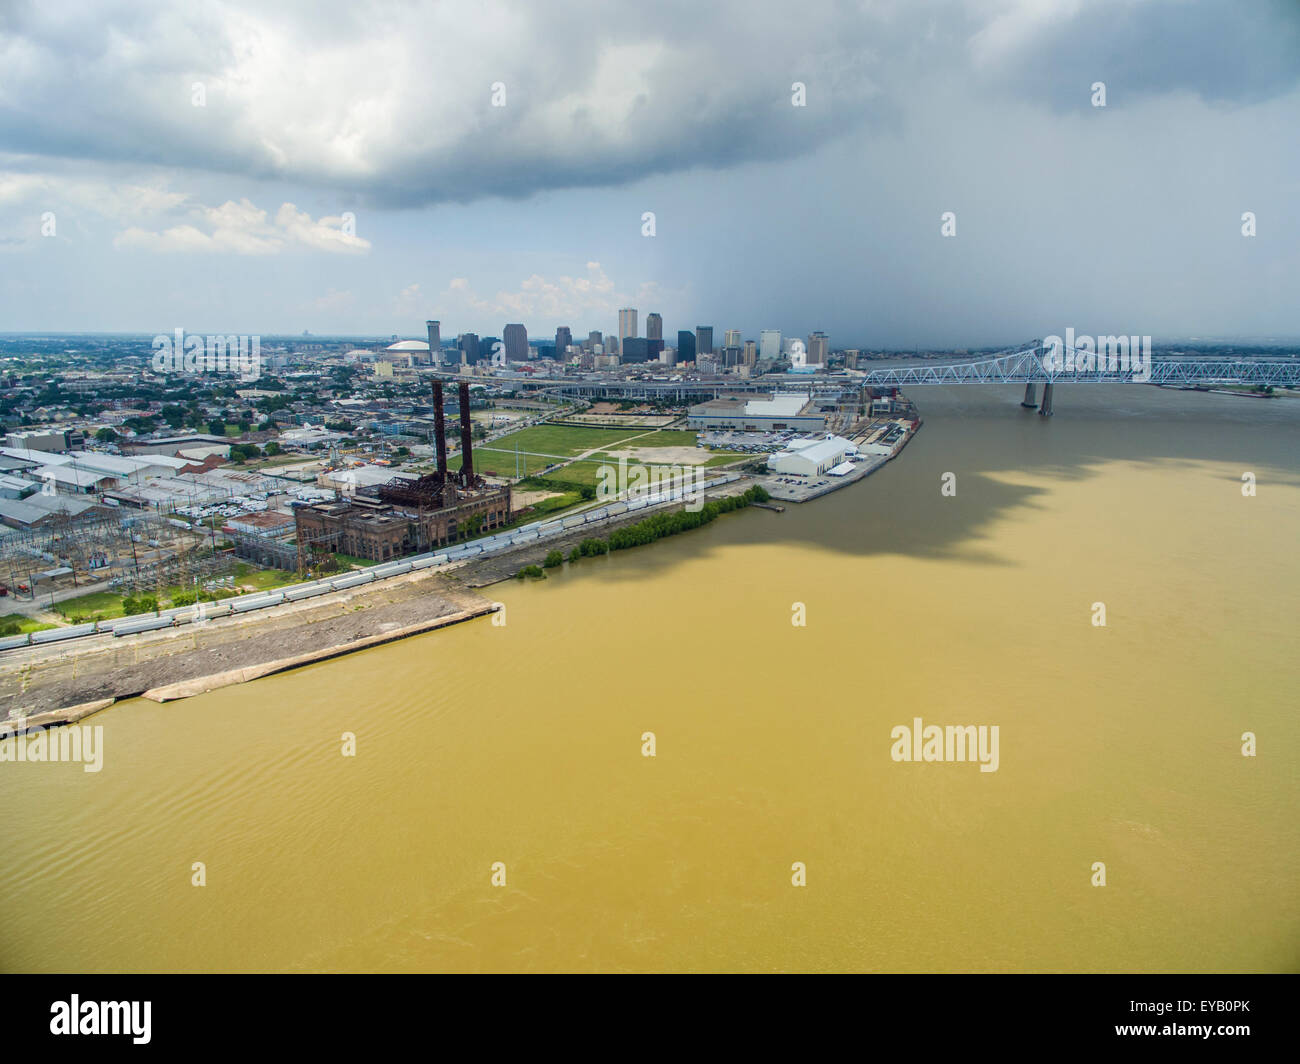 The dirty Mississippi River flowing through New Orleans with an ominous, dark cloud in the background. - Stock Image